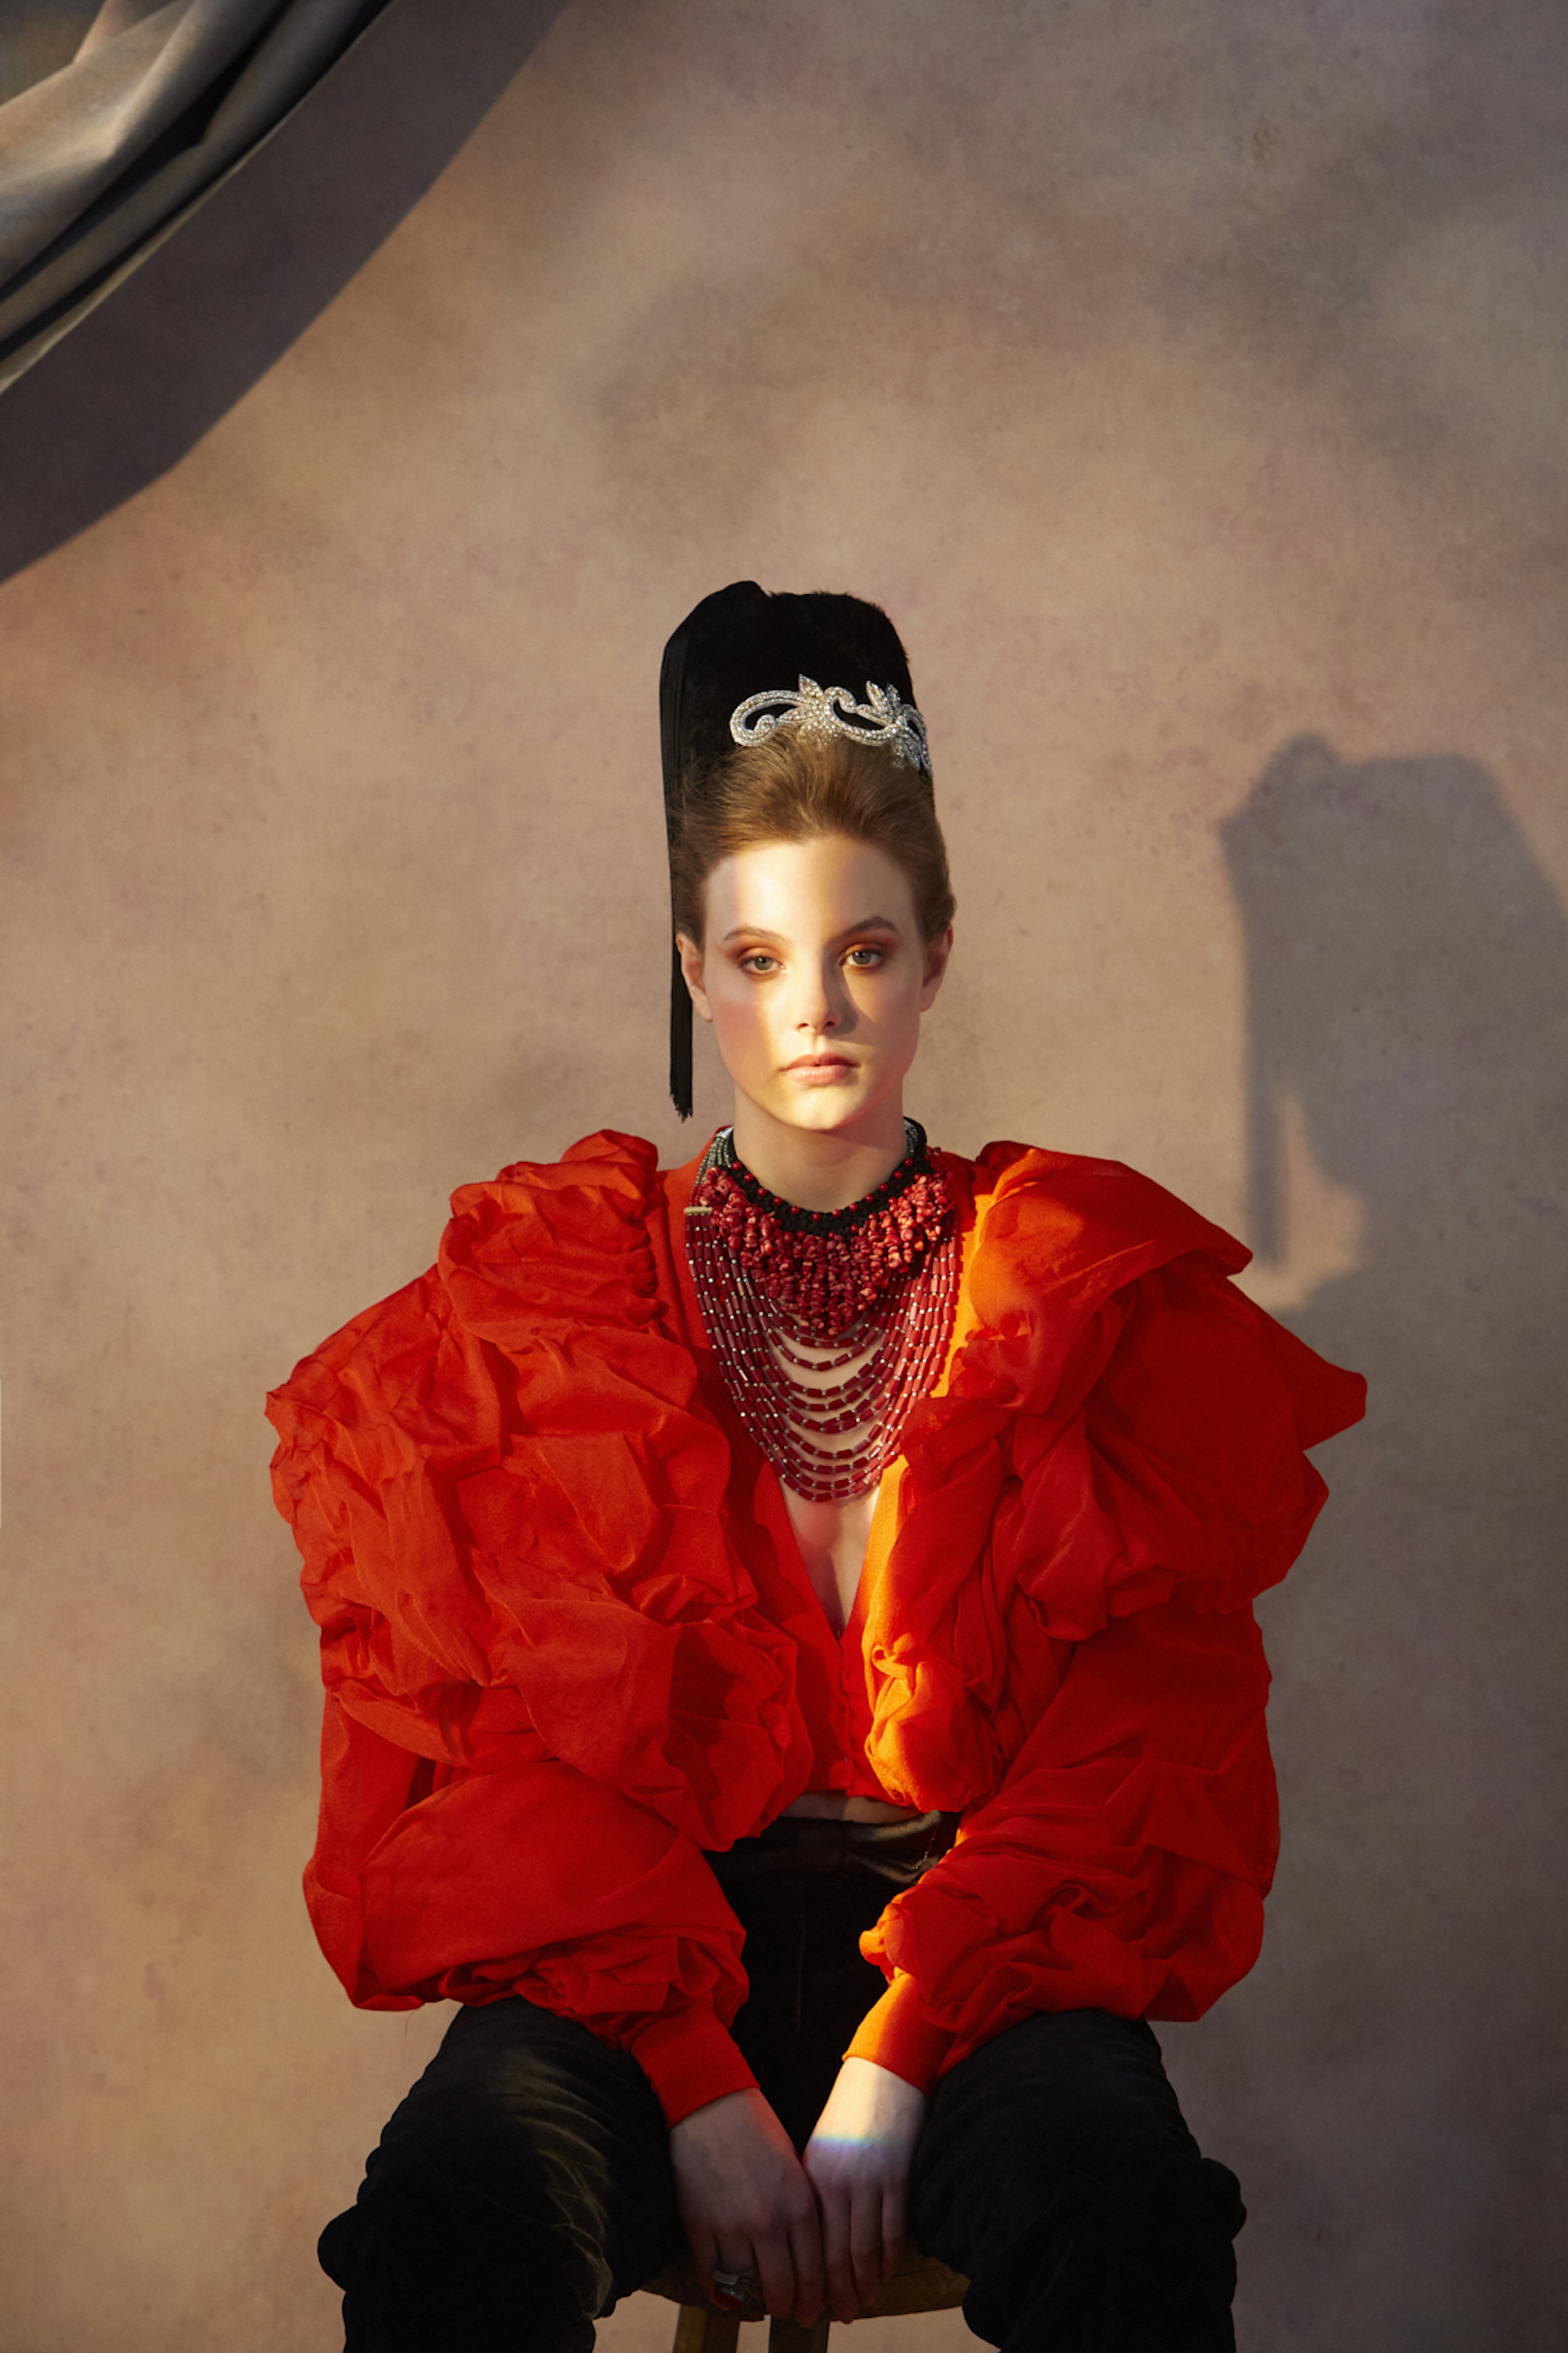 Another era fashion editorial red coat